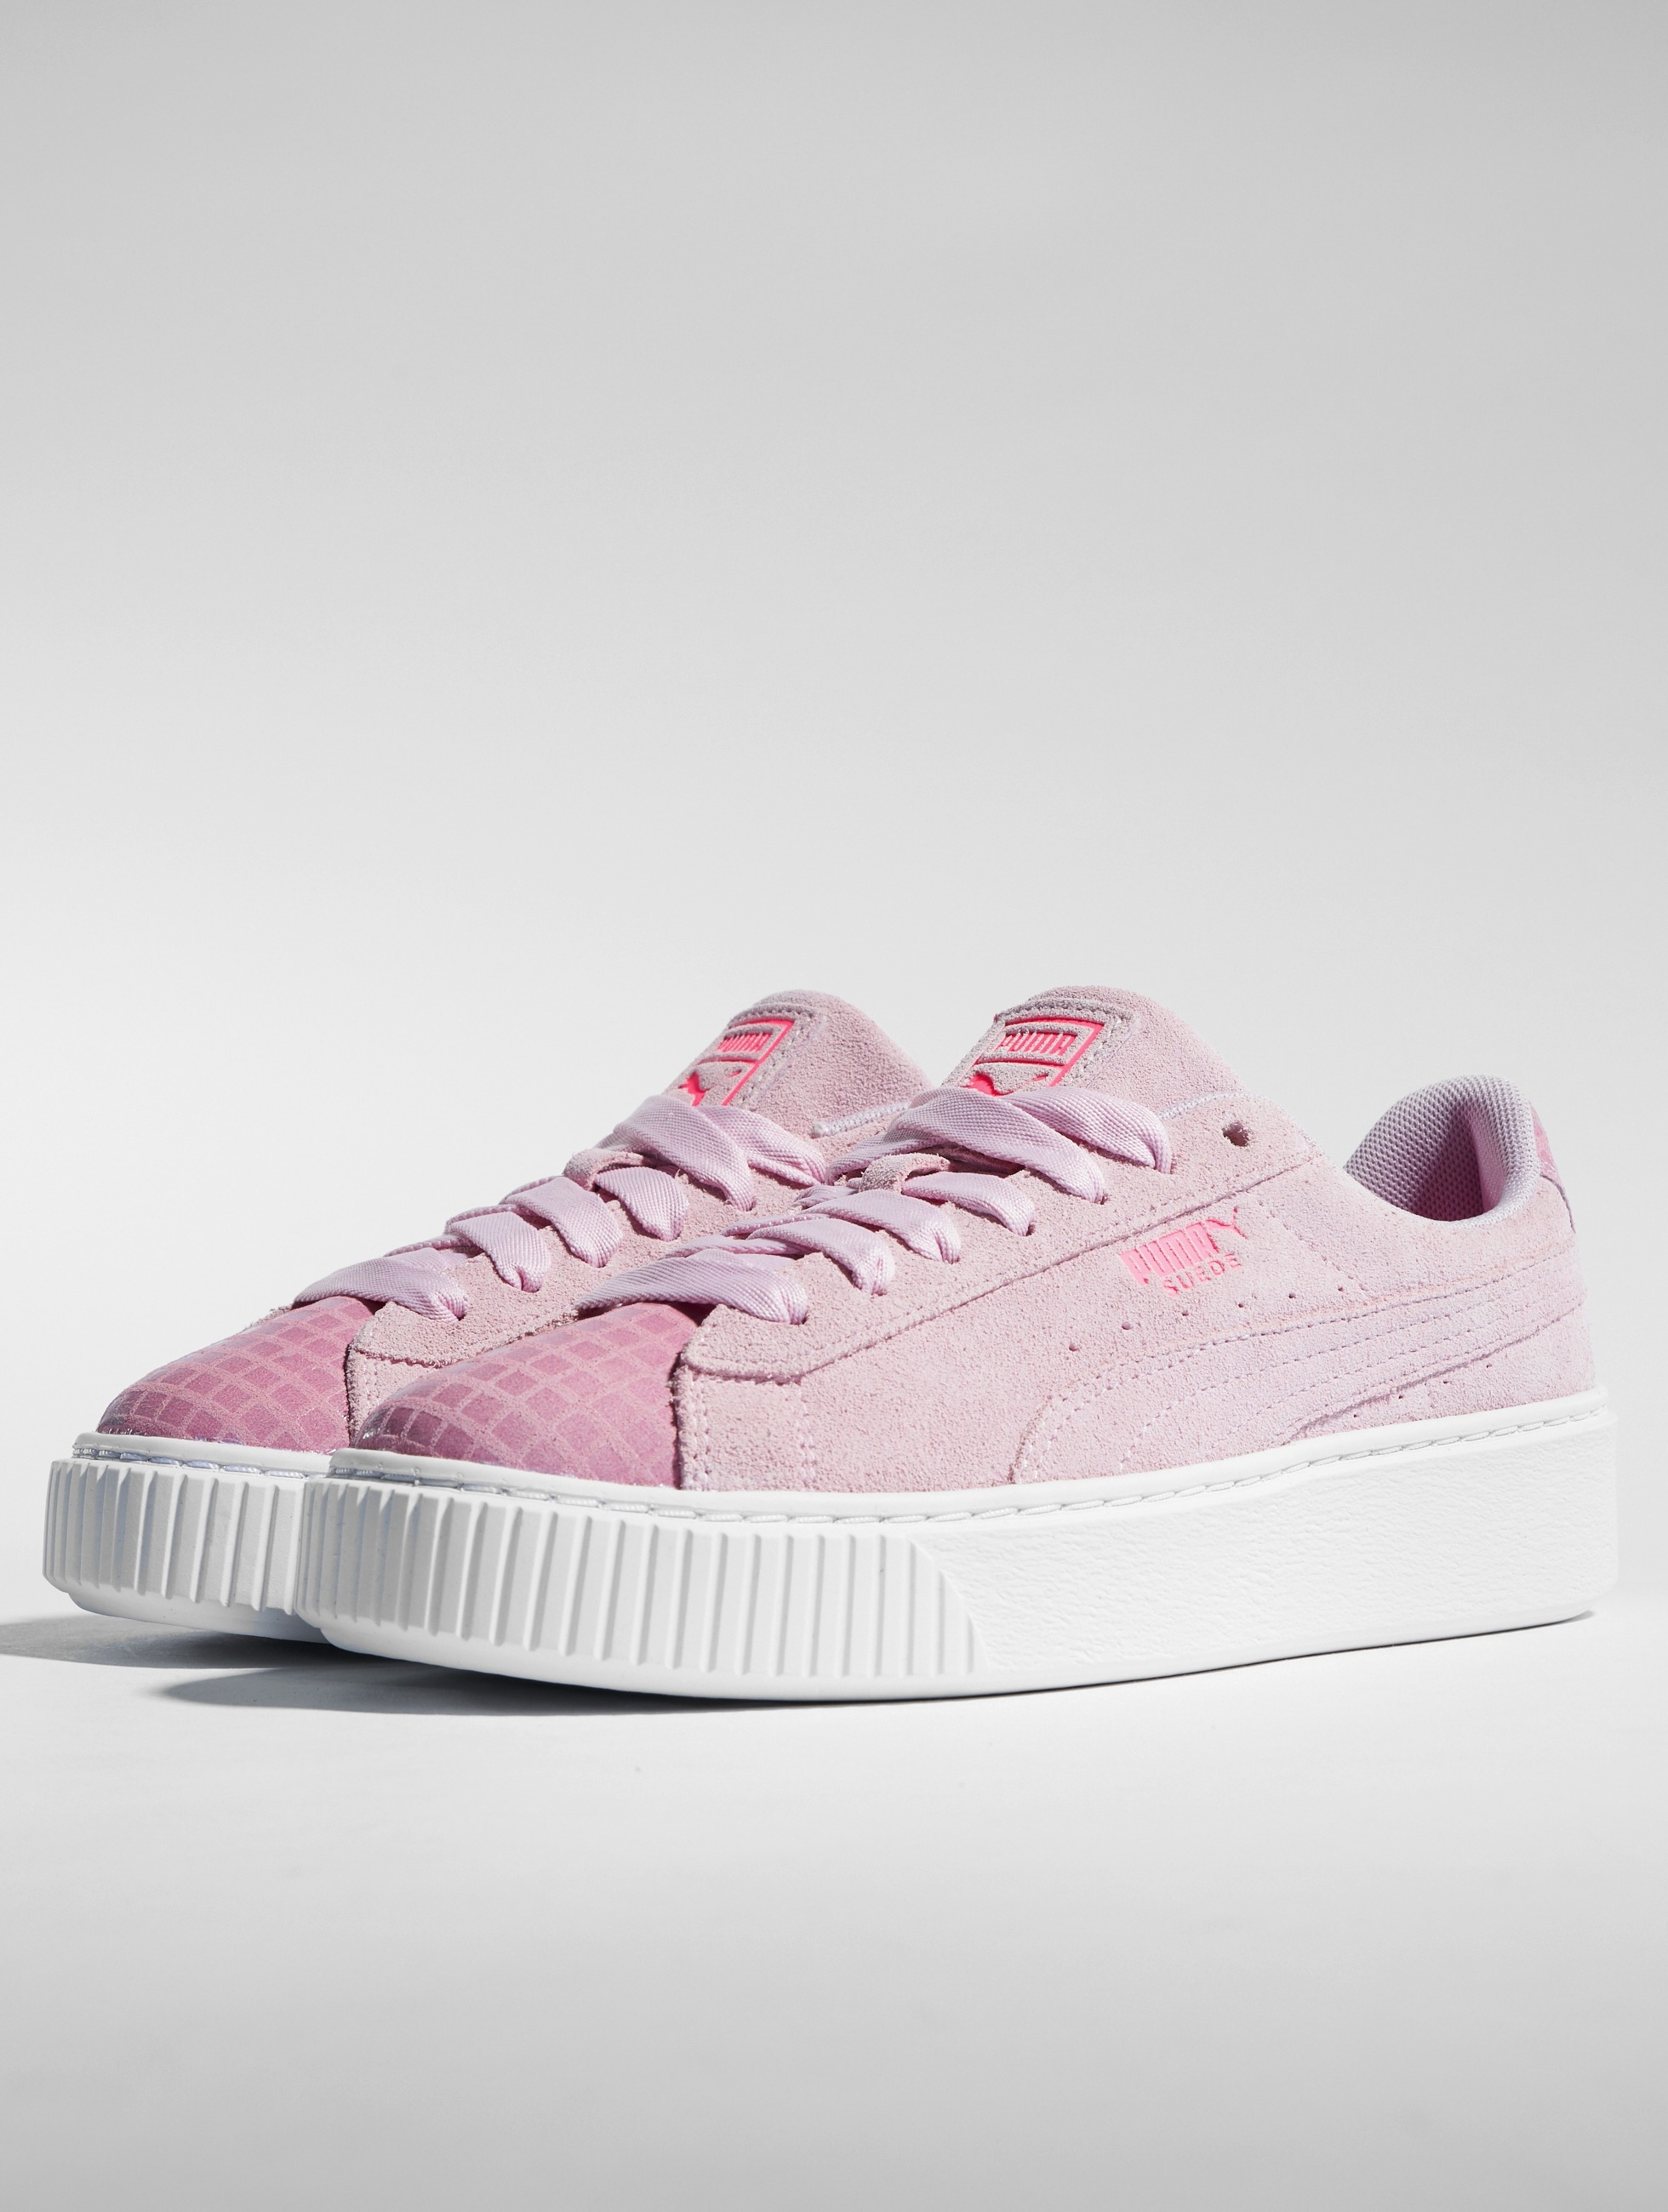 Platform Orchid Puma Street Sneakers Suede 2 Winsome mN8n0vw